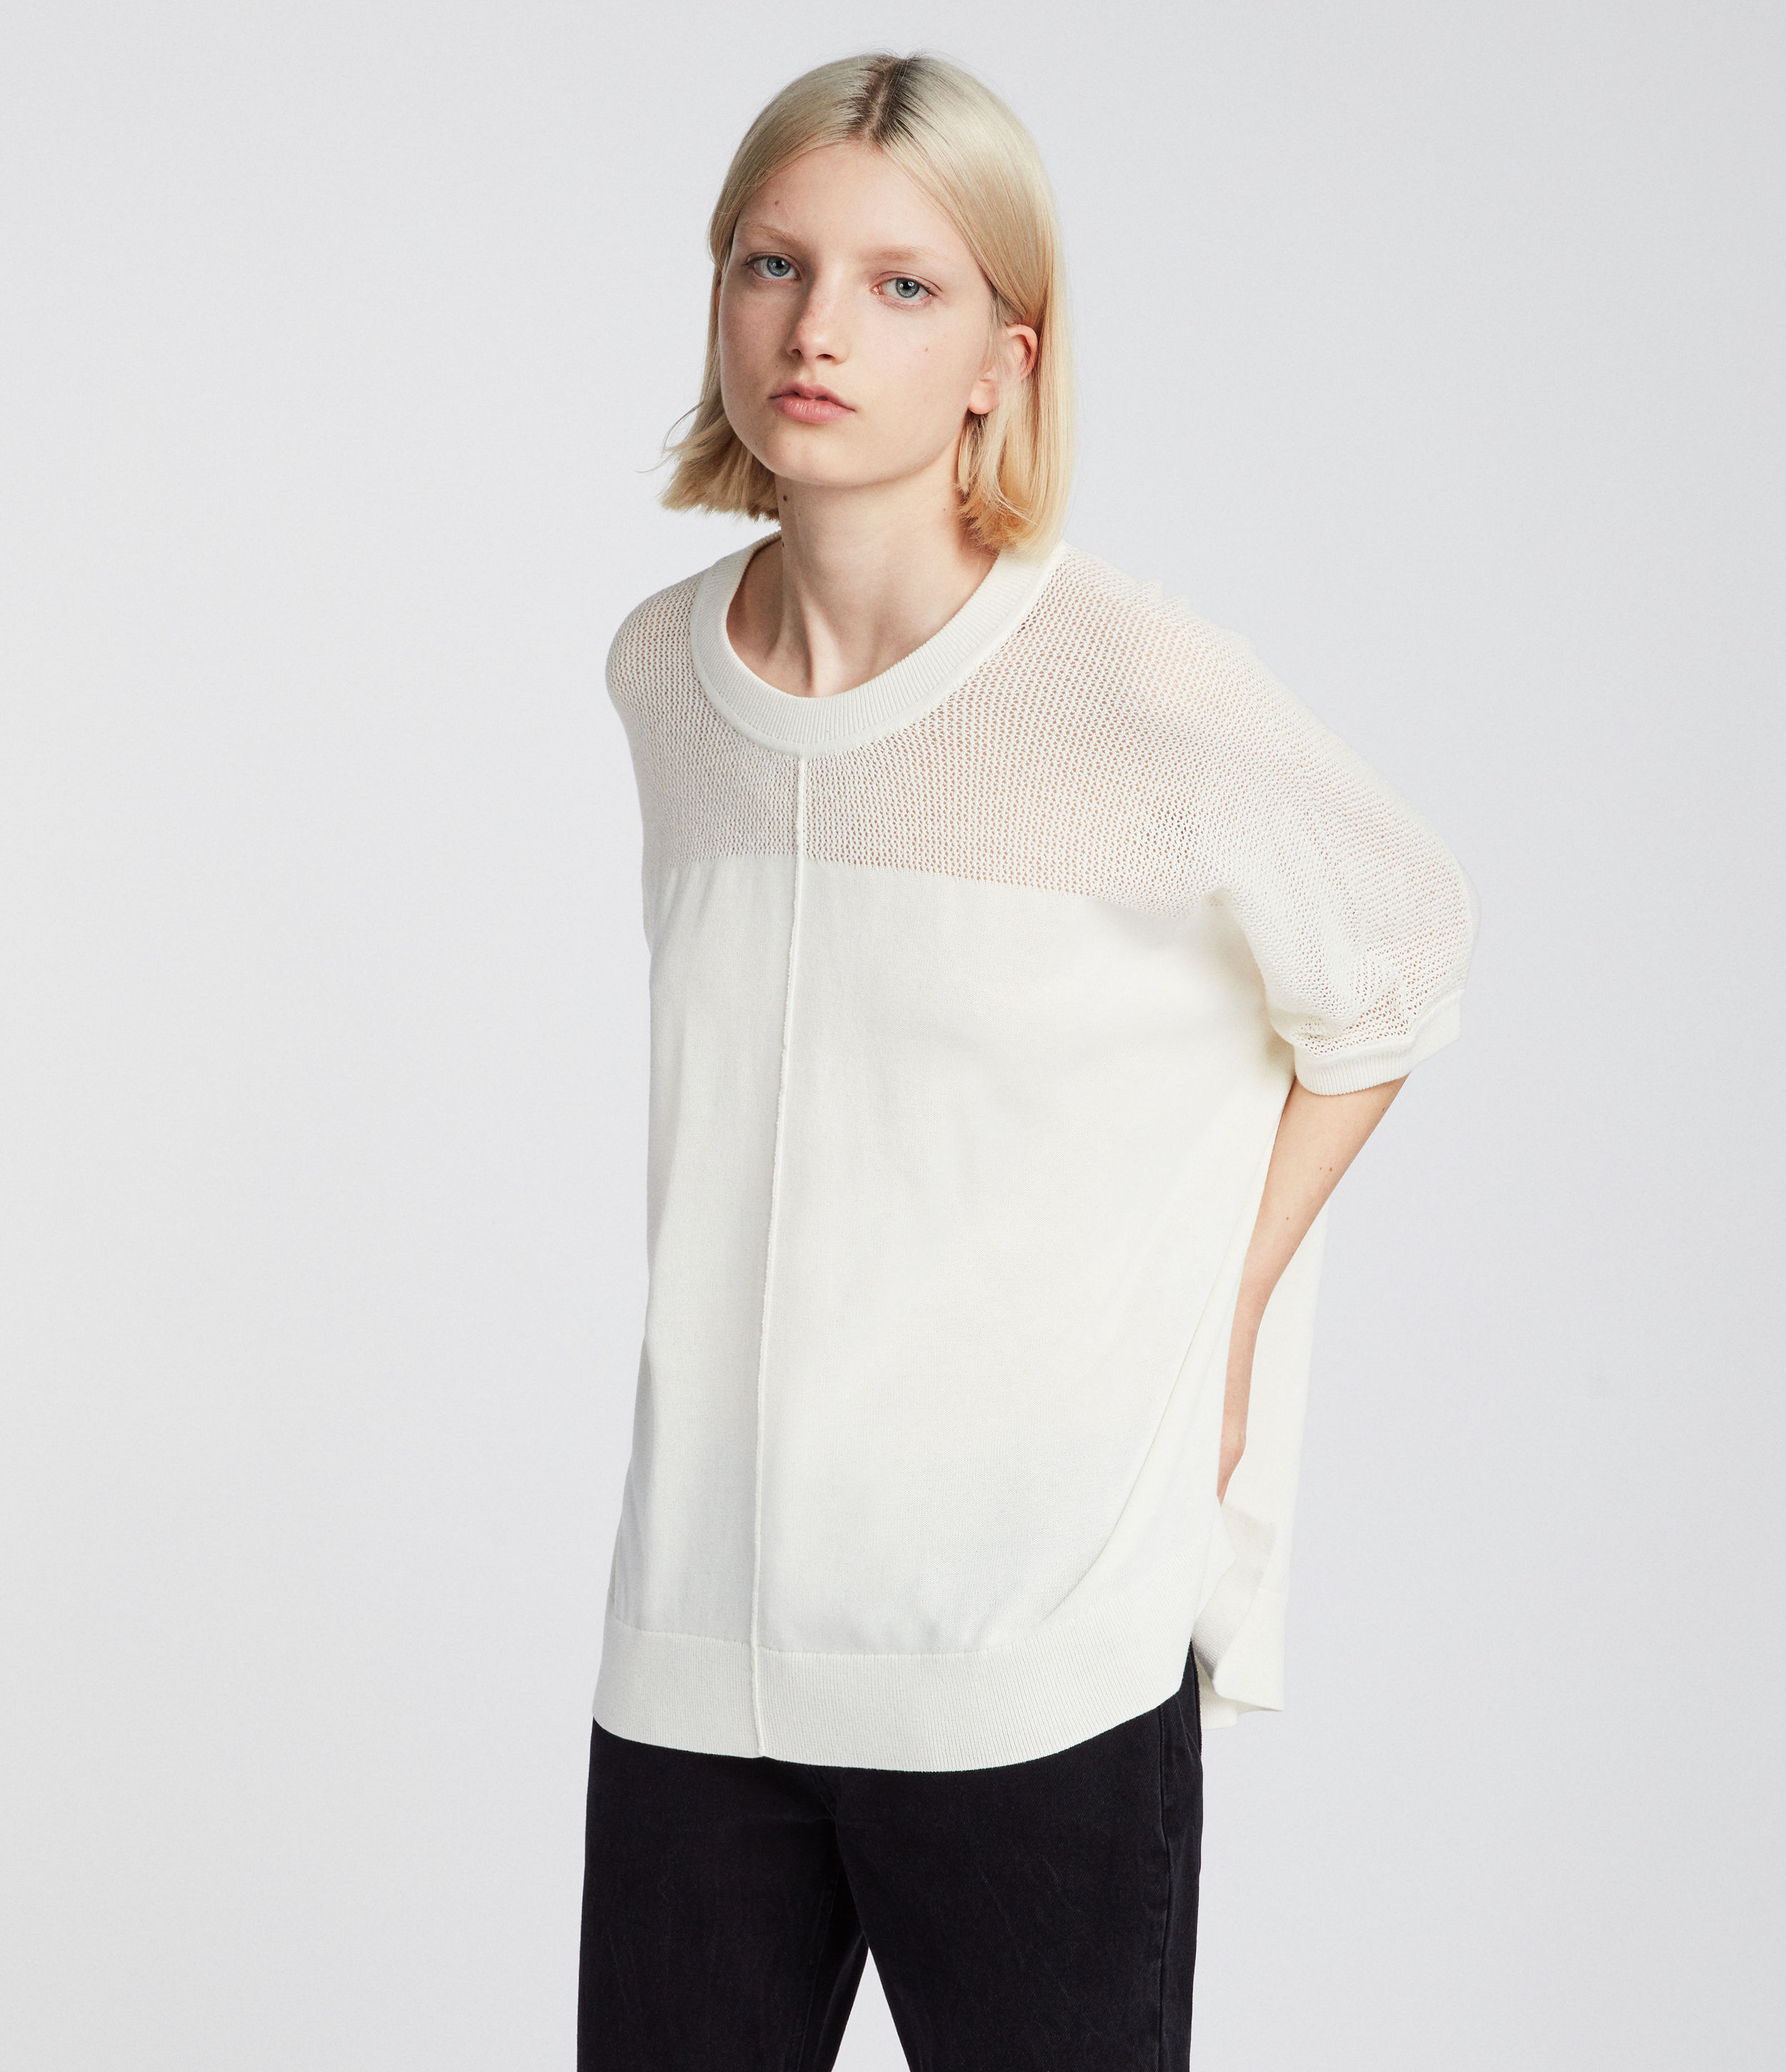 Shop All Saints Tops for Women - Obsessory 90abb1e99